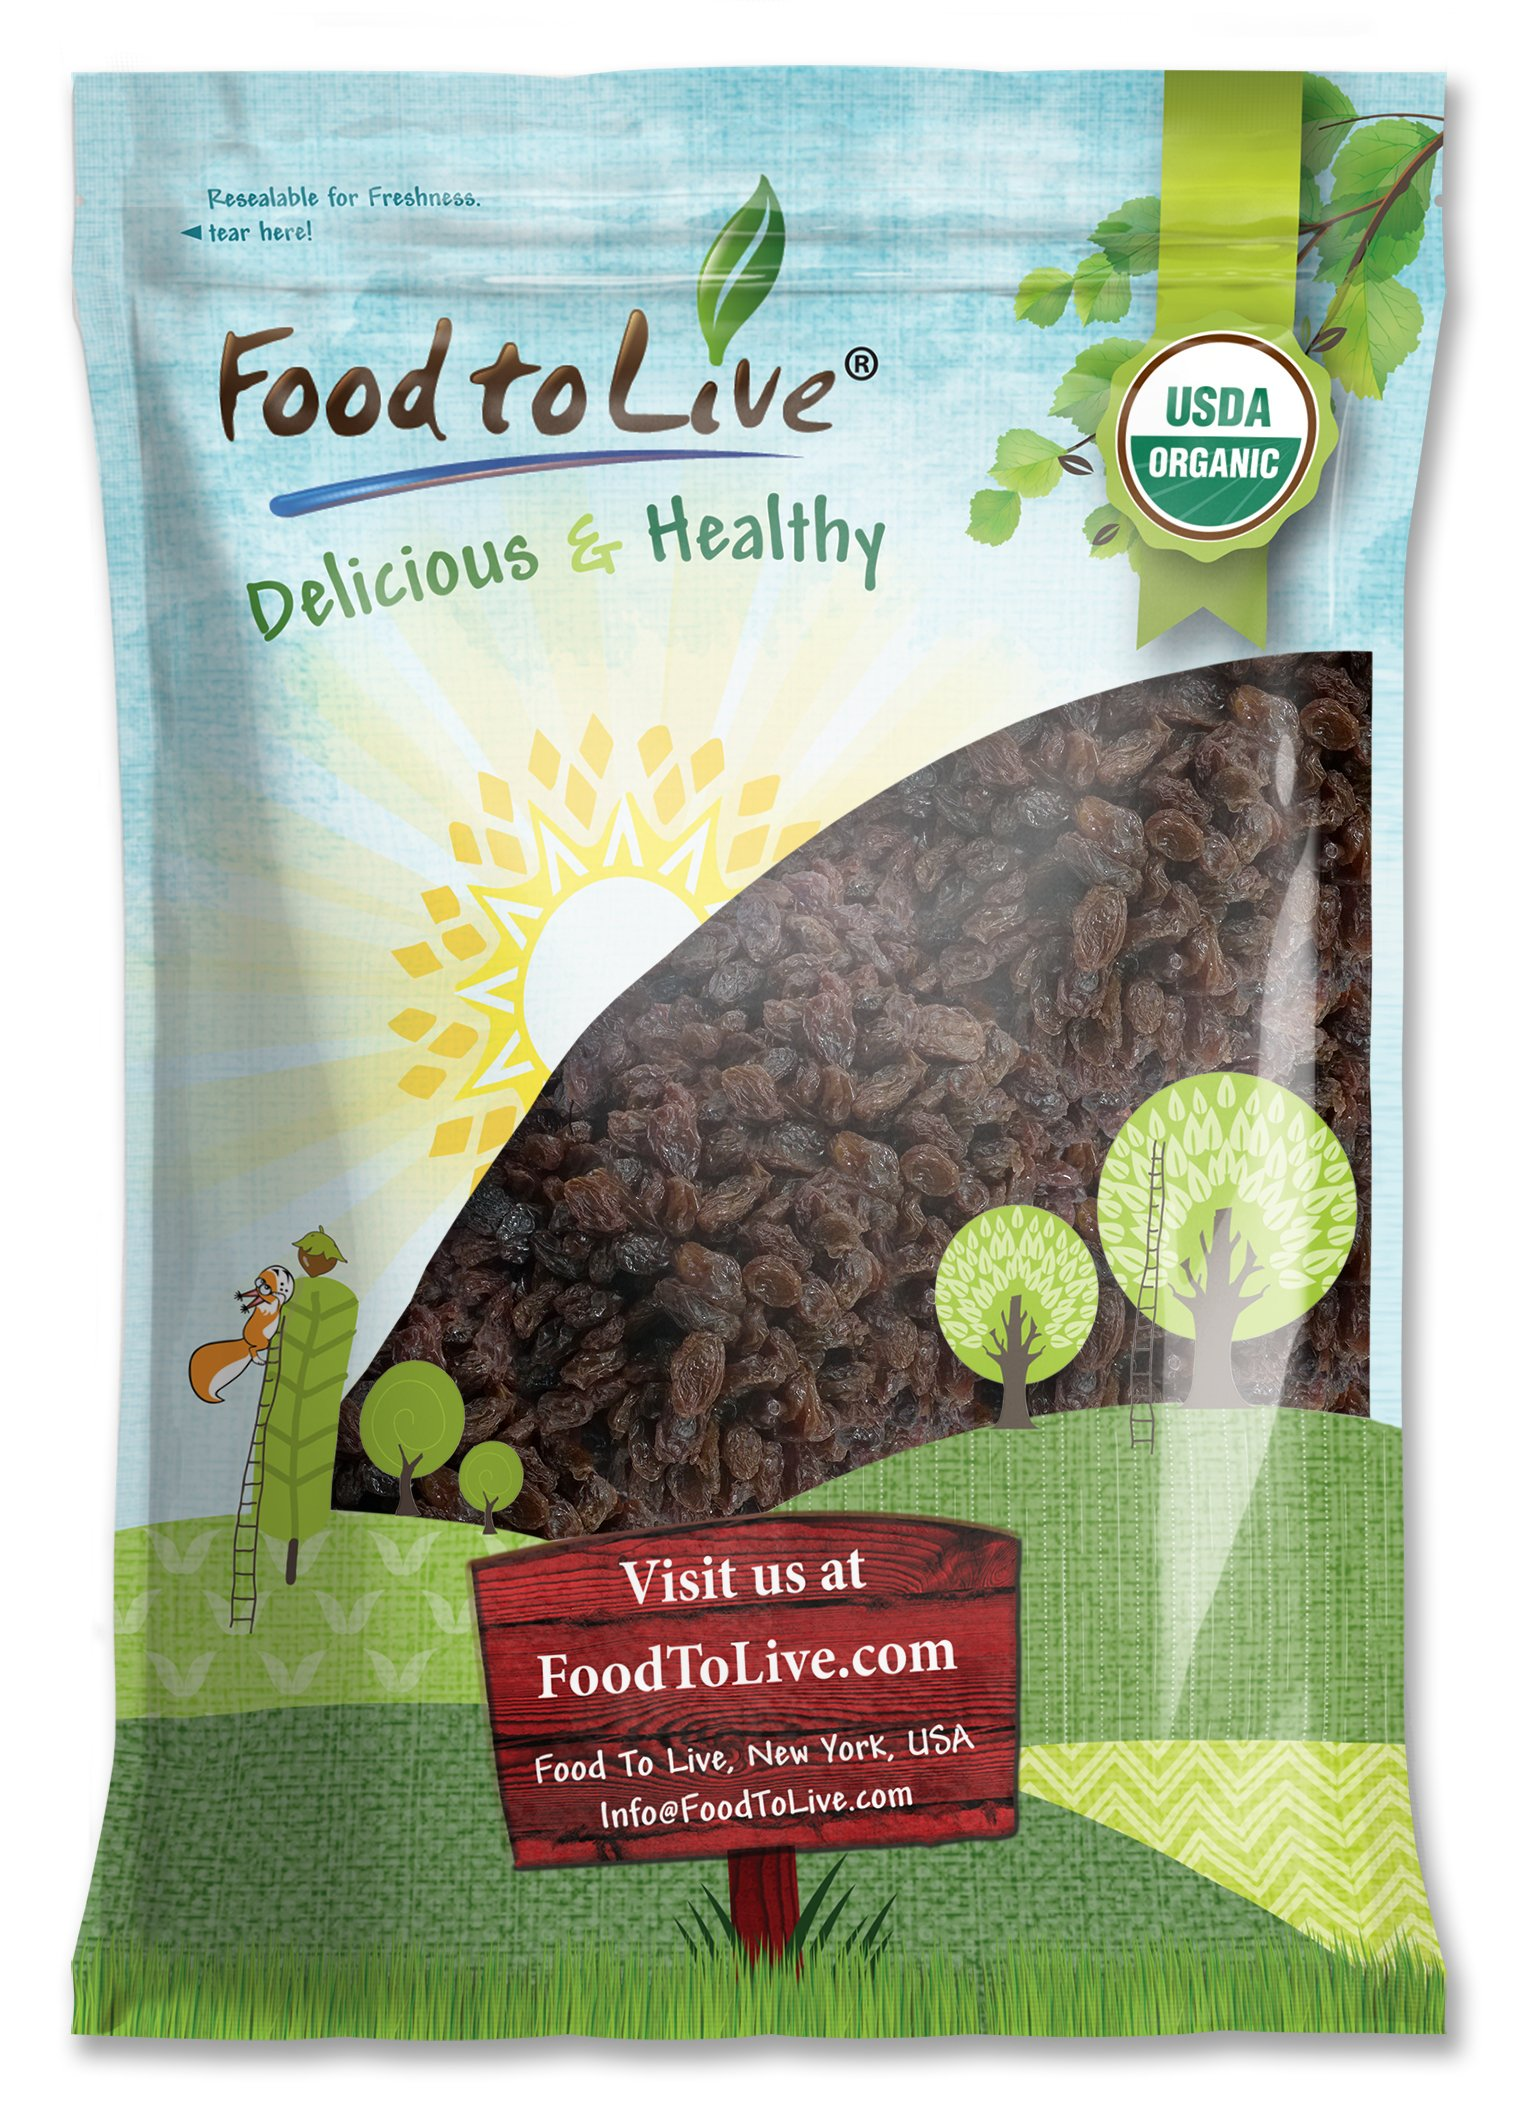 California Organic Raisins, 12 Pounds - Thompson Seedless Select, Sun-Dried, Non-GMO, Kosher, Unsulphured, Bulk, Lightly Coated with Organic Sunflower Oil by Food To Live